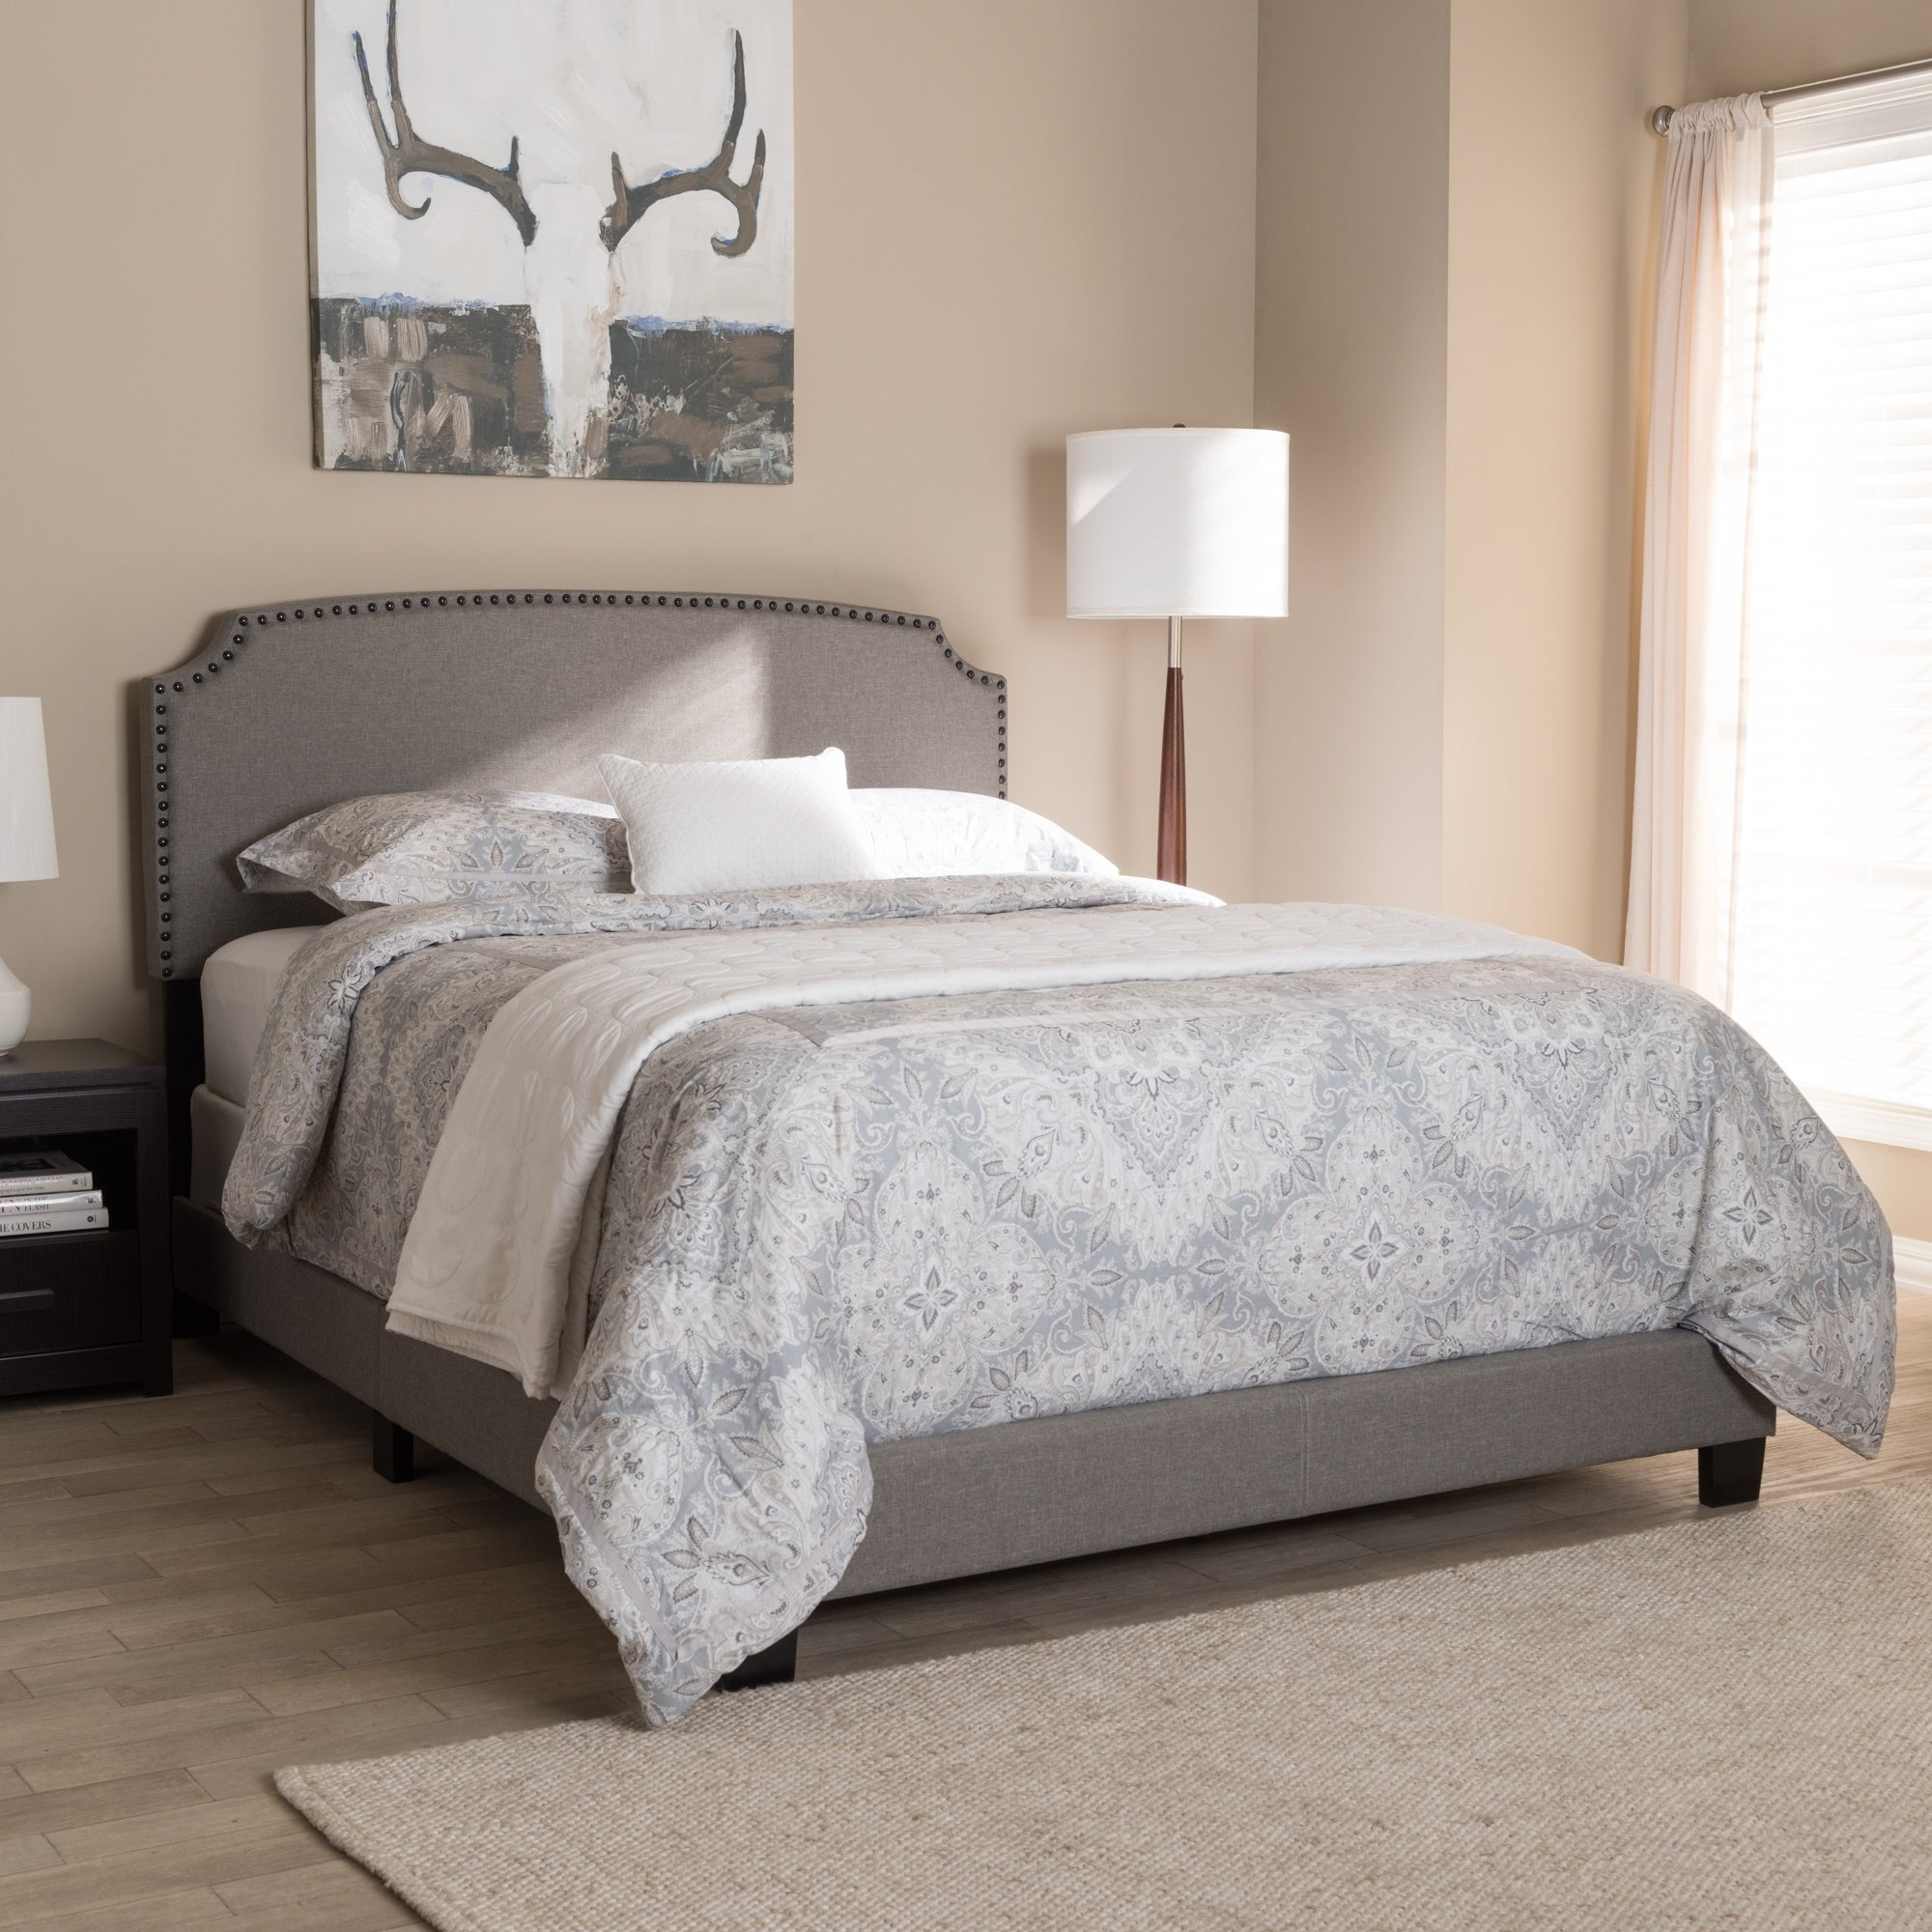 floor designs contemporary shades modern bedding white ideas of brown gray purple and bed patterned master lovely color design blanket set bedroom black